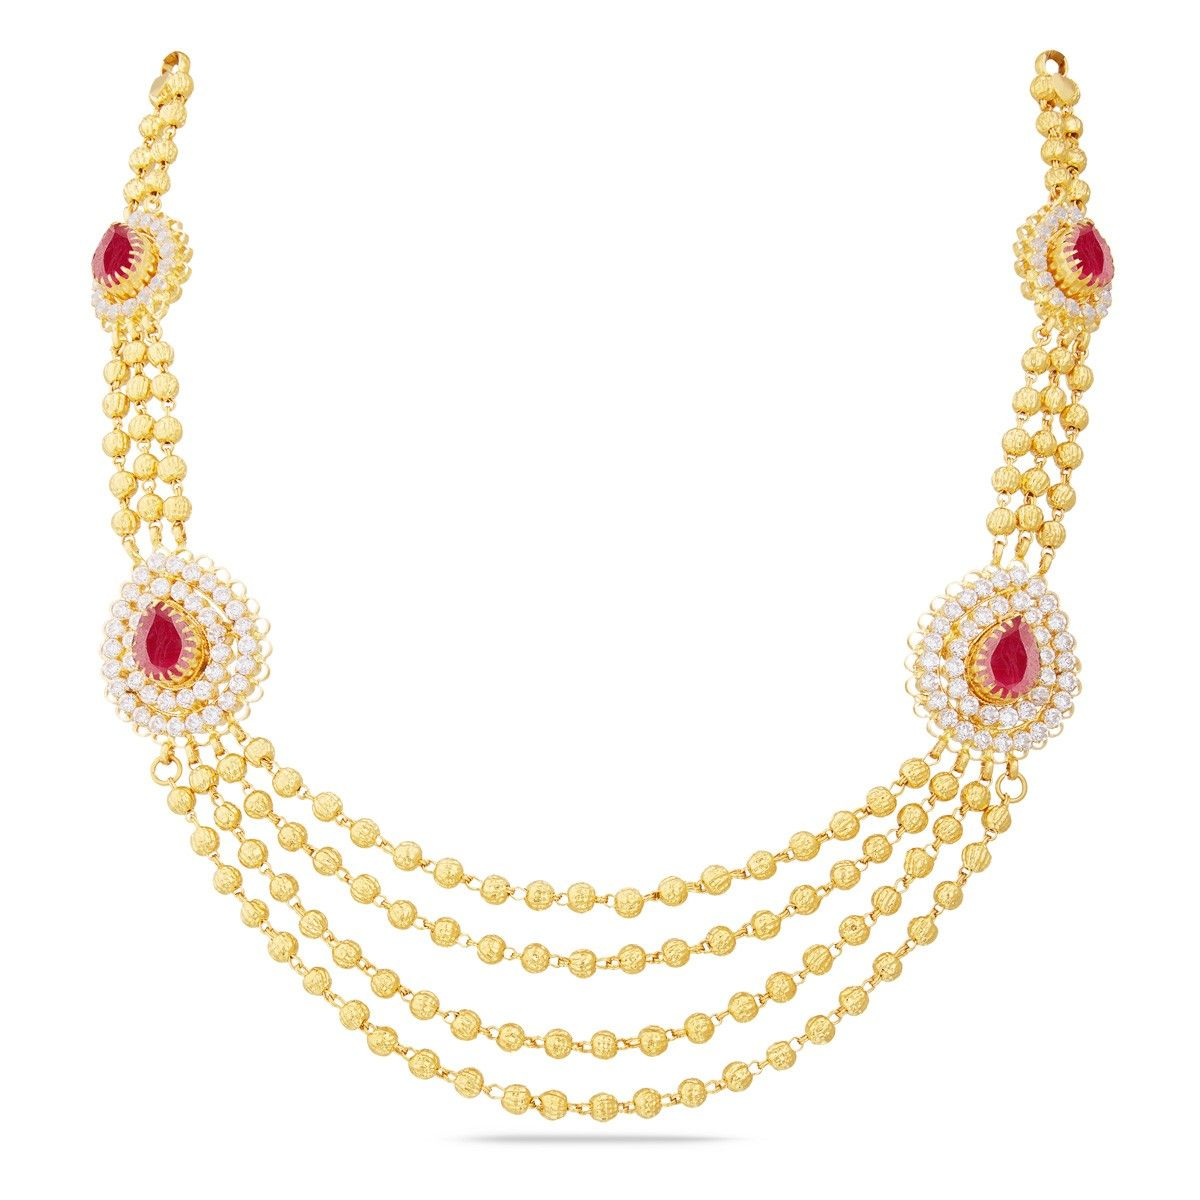 Gold Necklace Design in 30 Grams With Price | Necklace designs ...